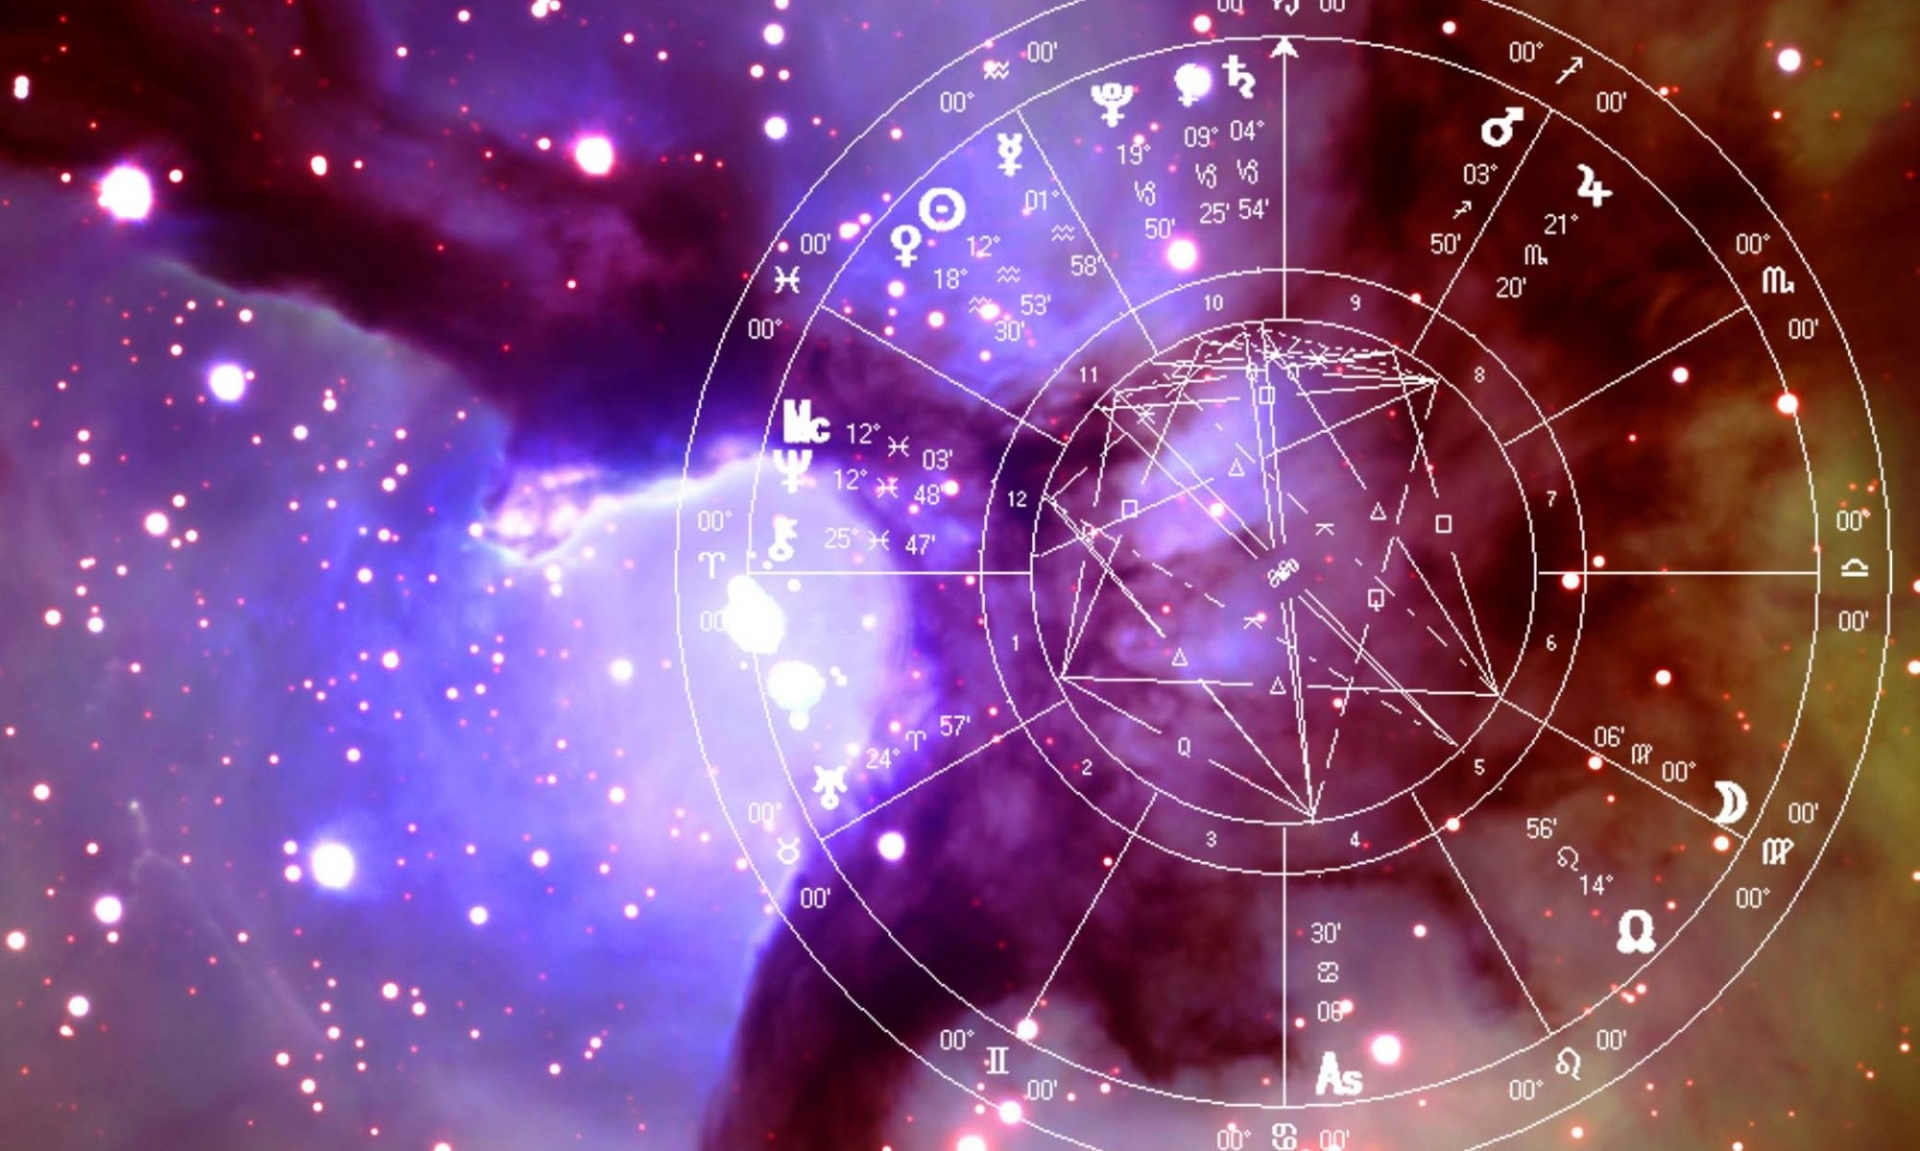 Daily Horoscope for March 26: Astrological Prediction for Zodiac Signs